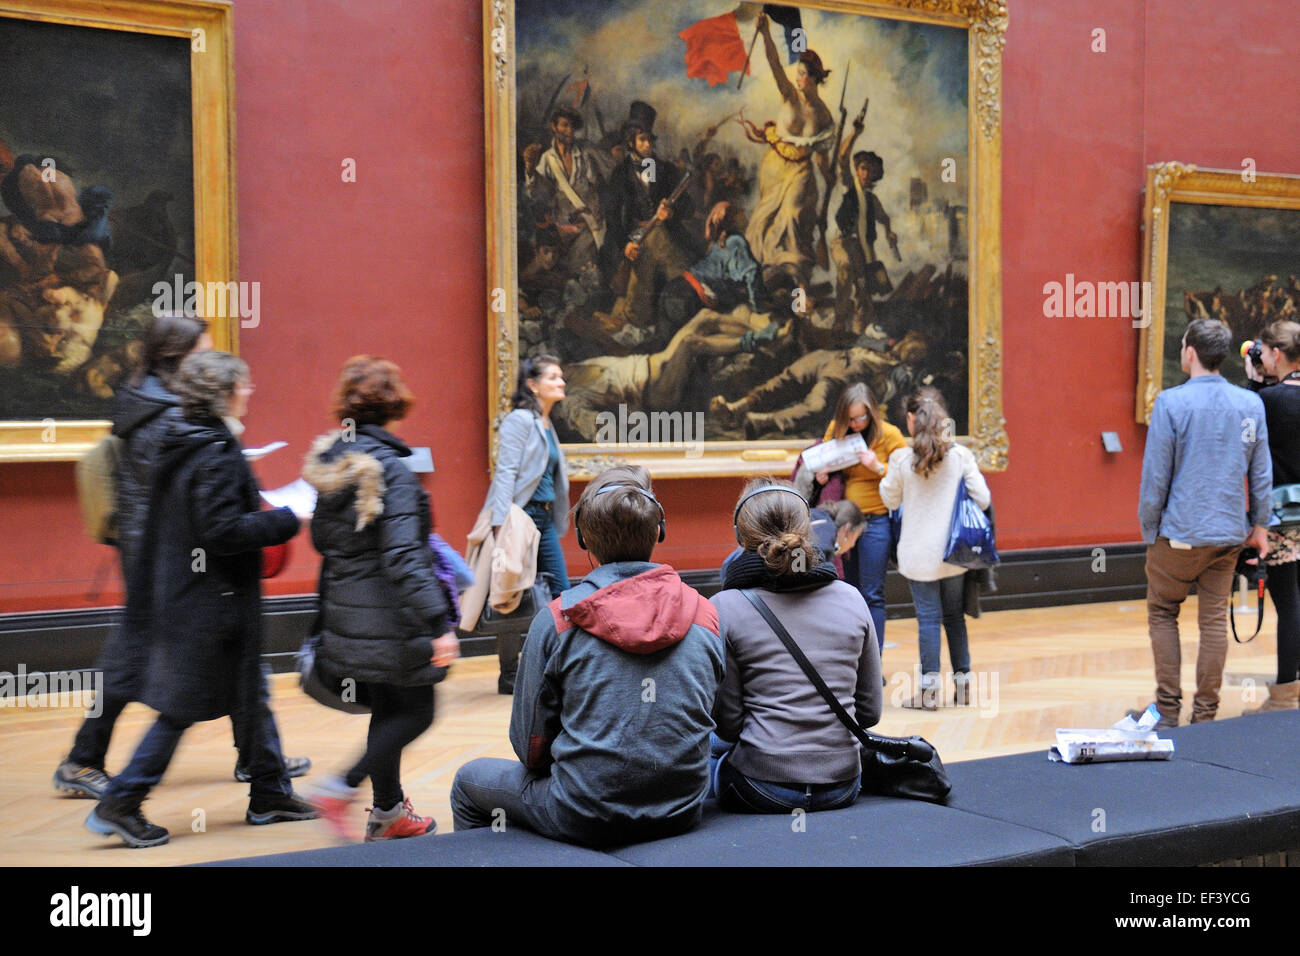 PARIS - MAR 1: Tourists look at the paintings of Eugene Delacroix at the Louvre Museum (Musee du Louvre). - Stock Image